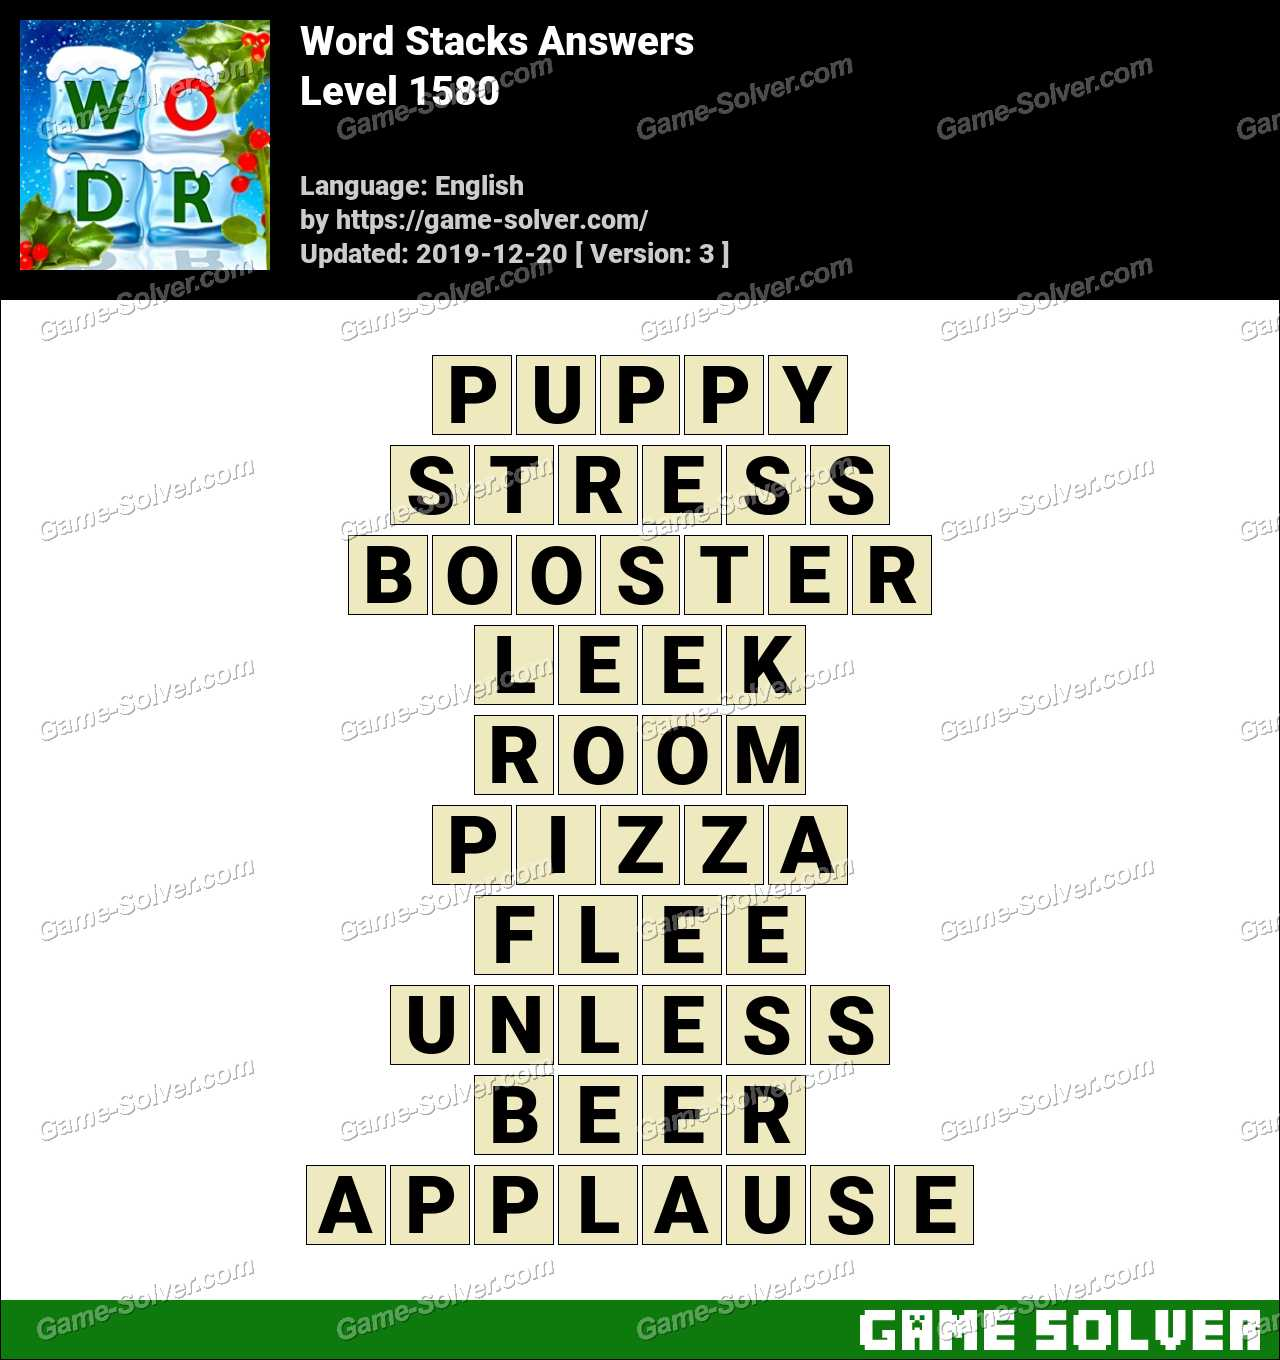 Word Stacks Level 1580 Answers